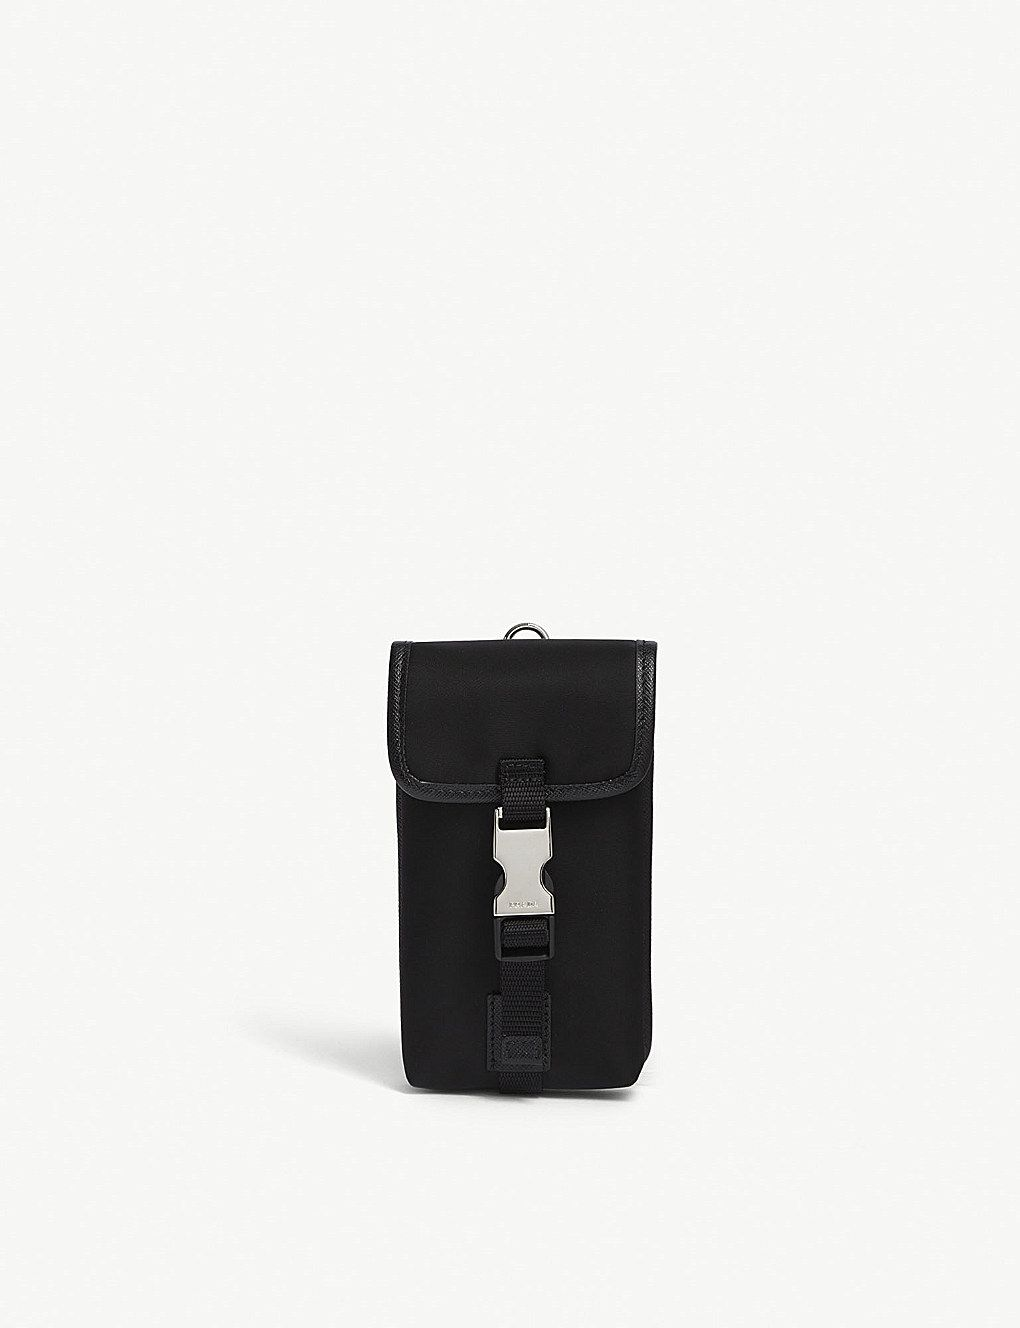 1382aed5a6 Single clip nylon keyring pouch   Madison Ave 17&18   Prada, Pouch ...